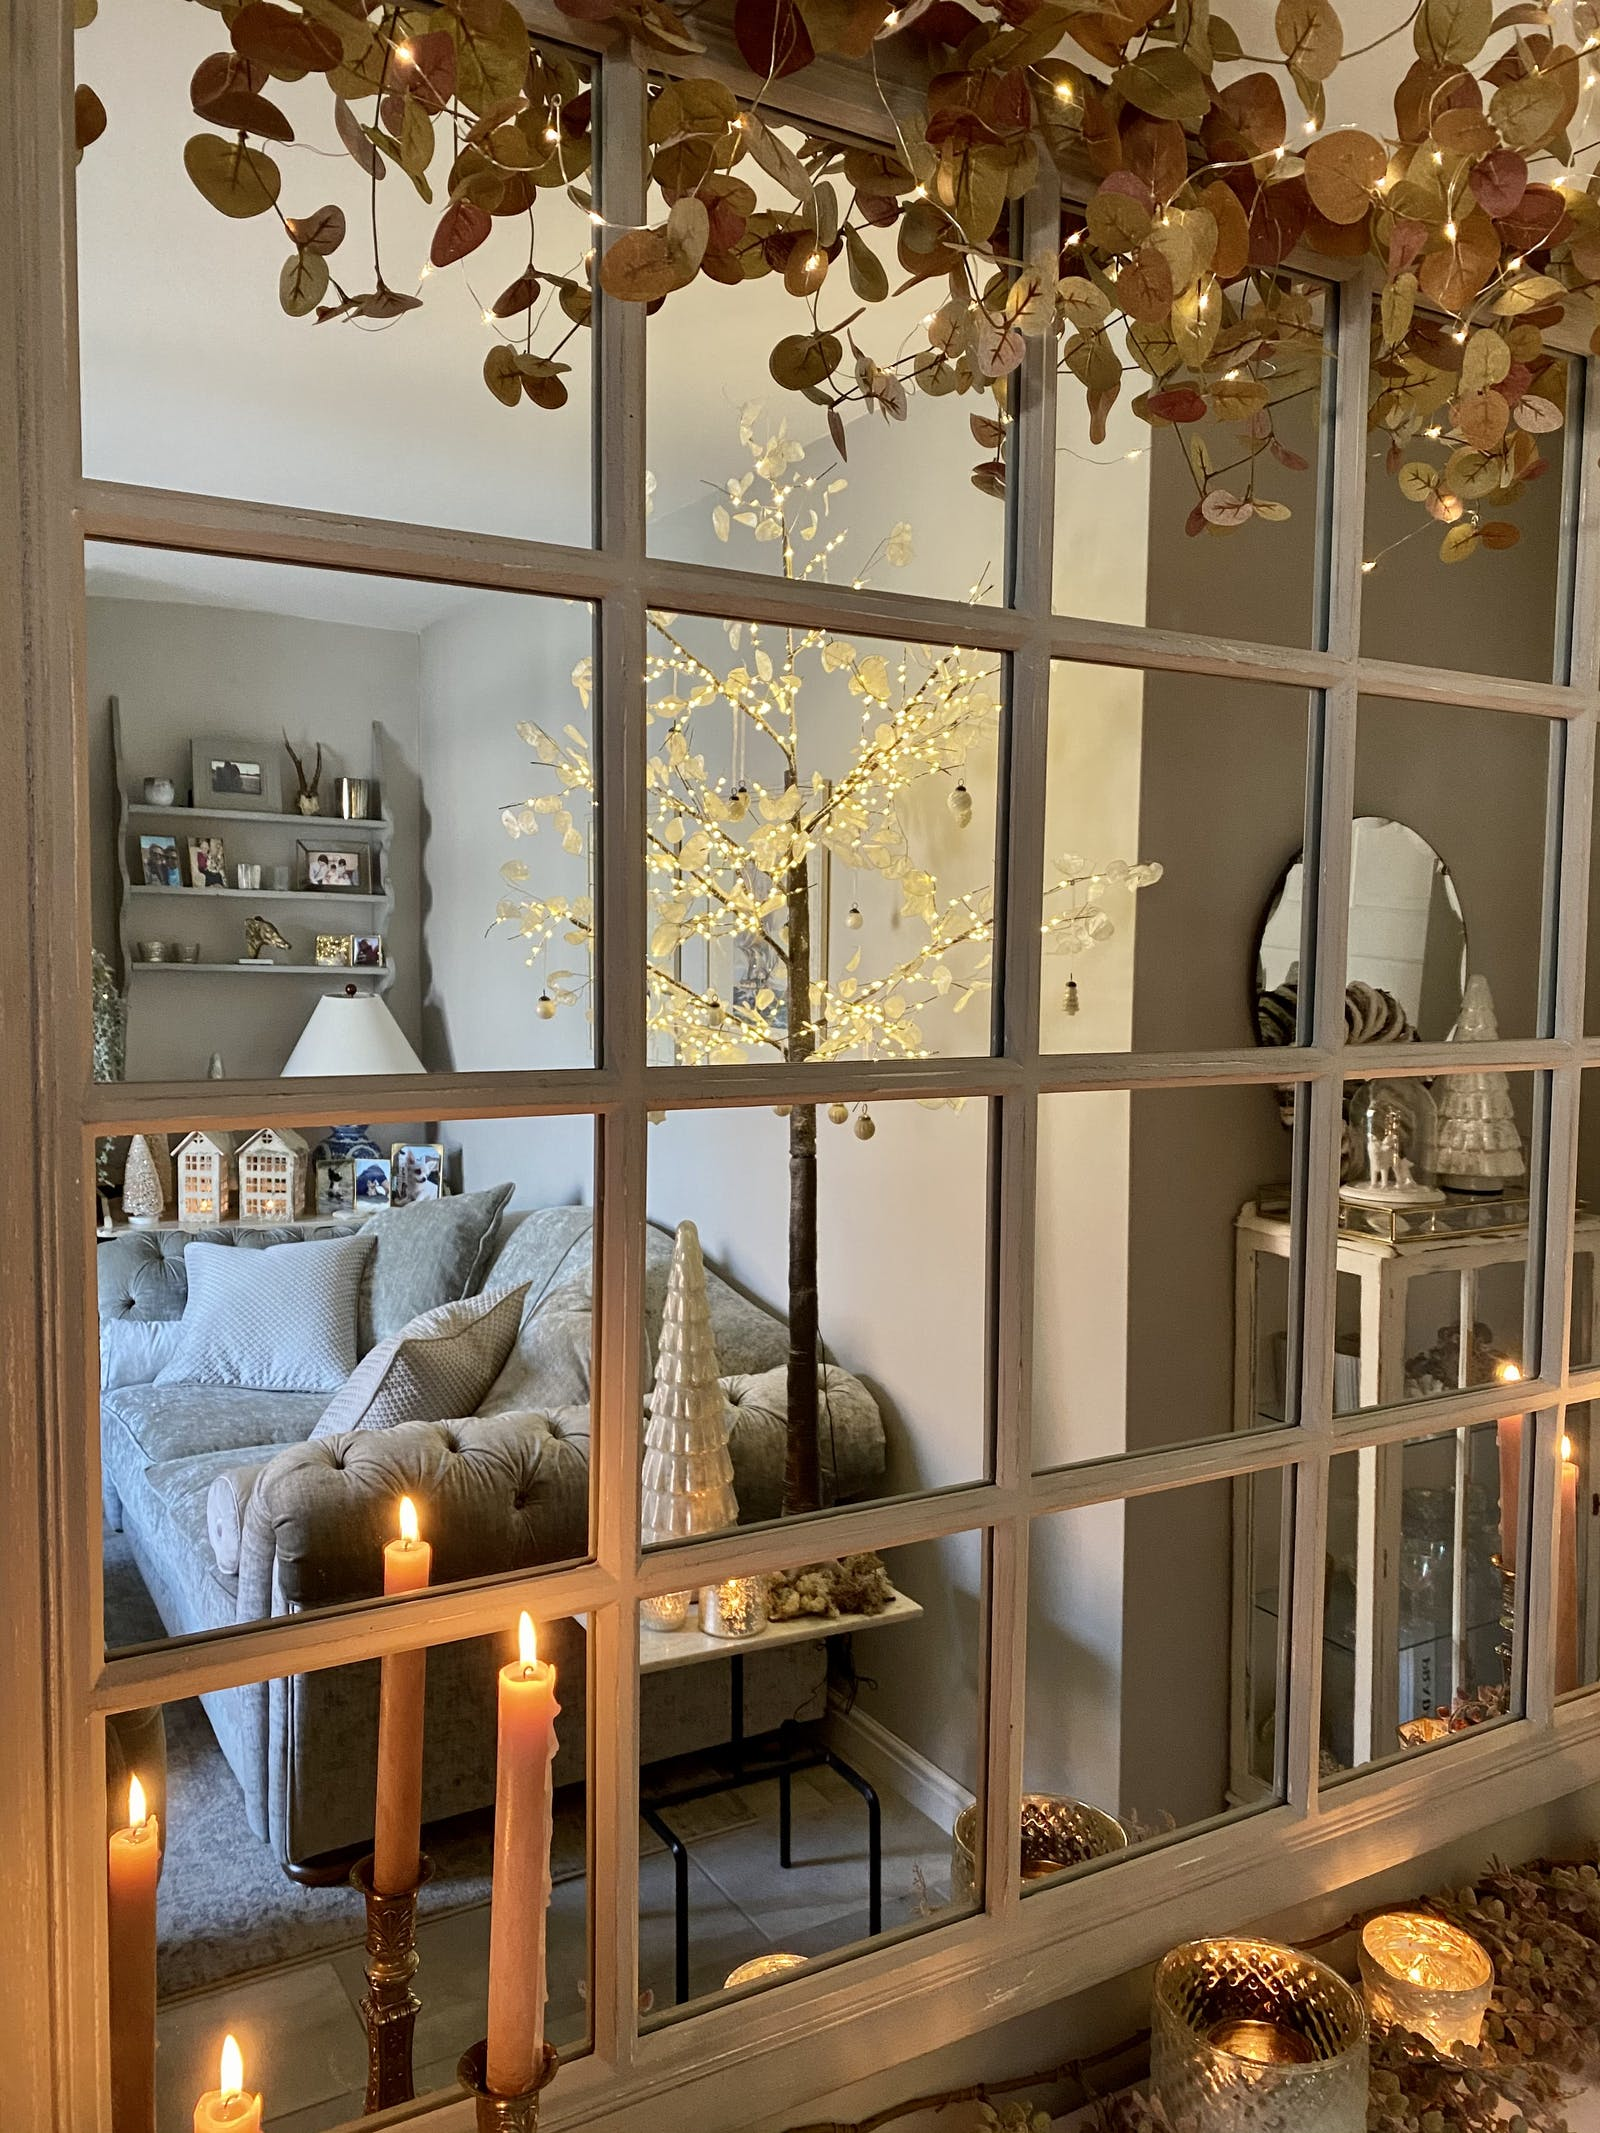 Wall mirror reflecting a Christmas decorated living room